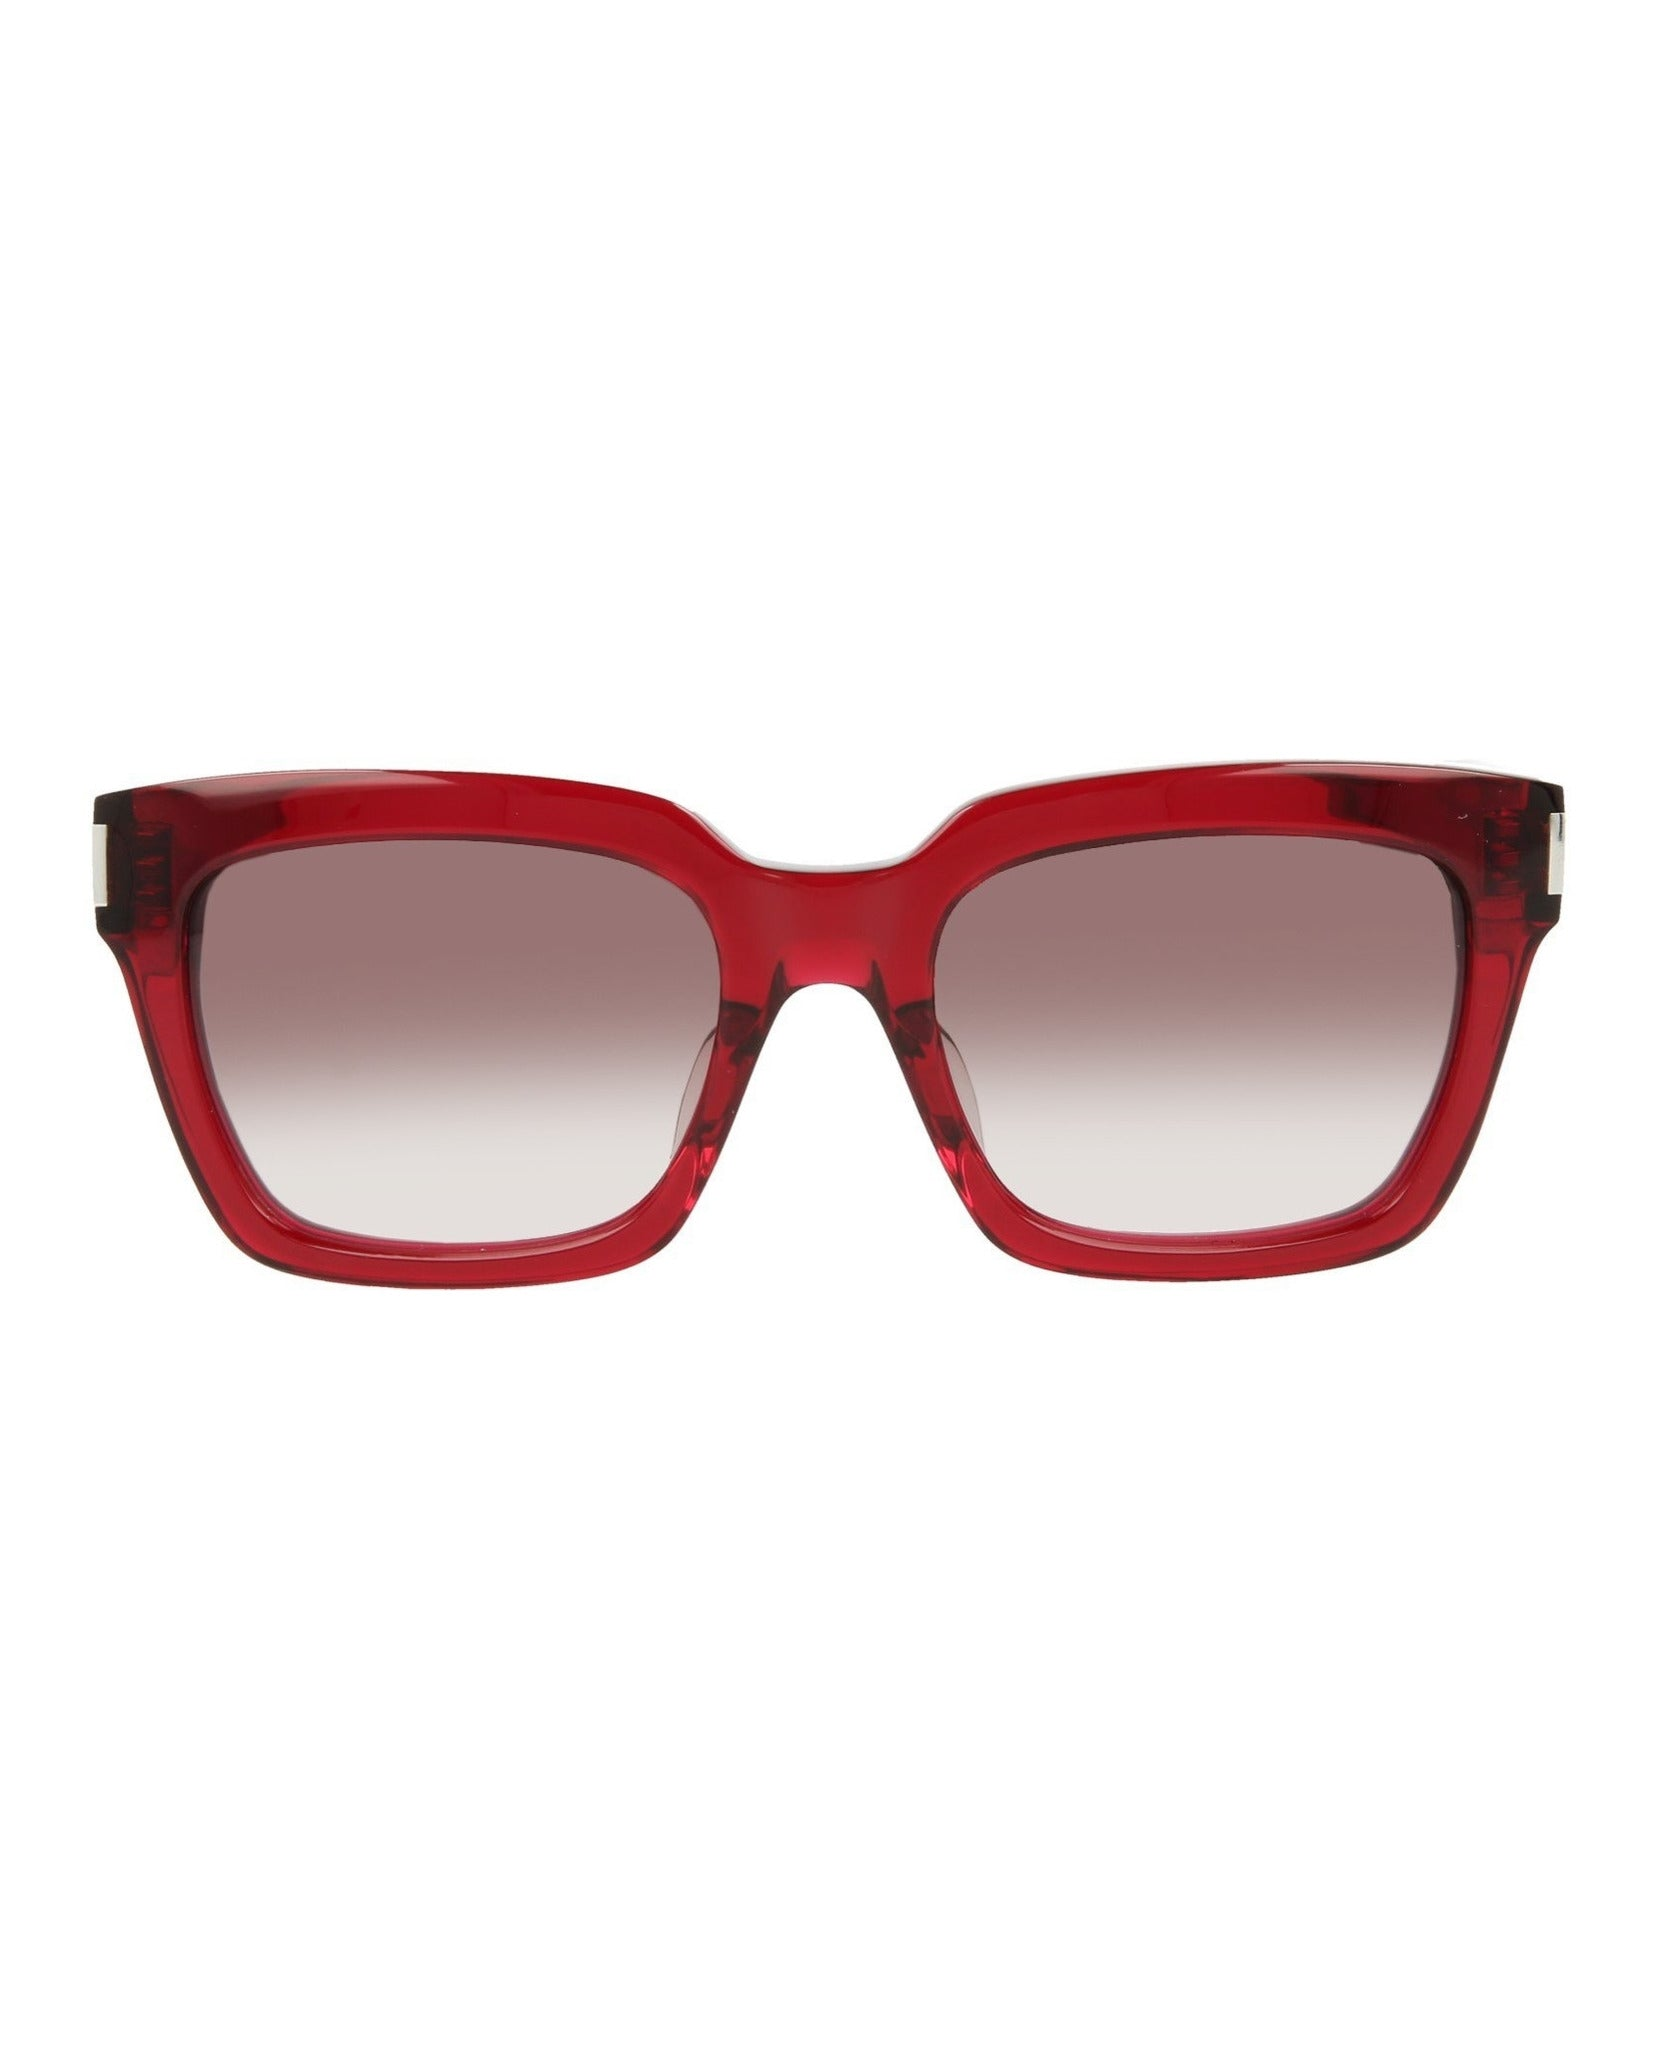 Saint Laurent Square/Rectangle Sunglasses